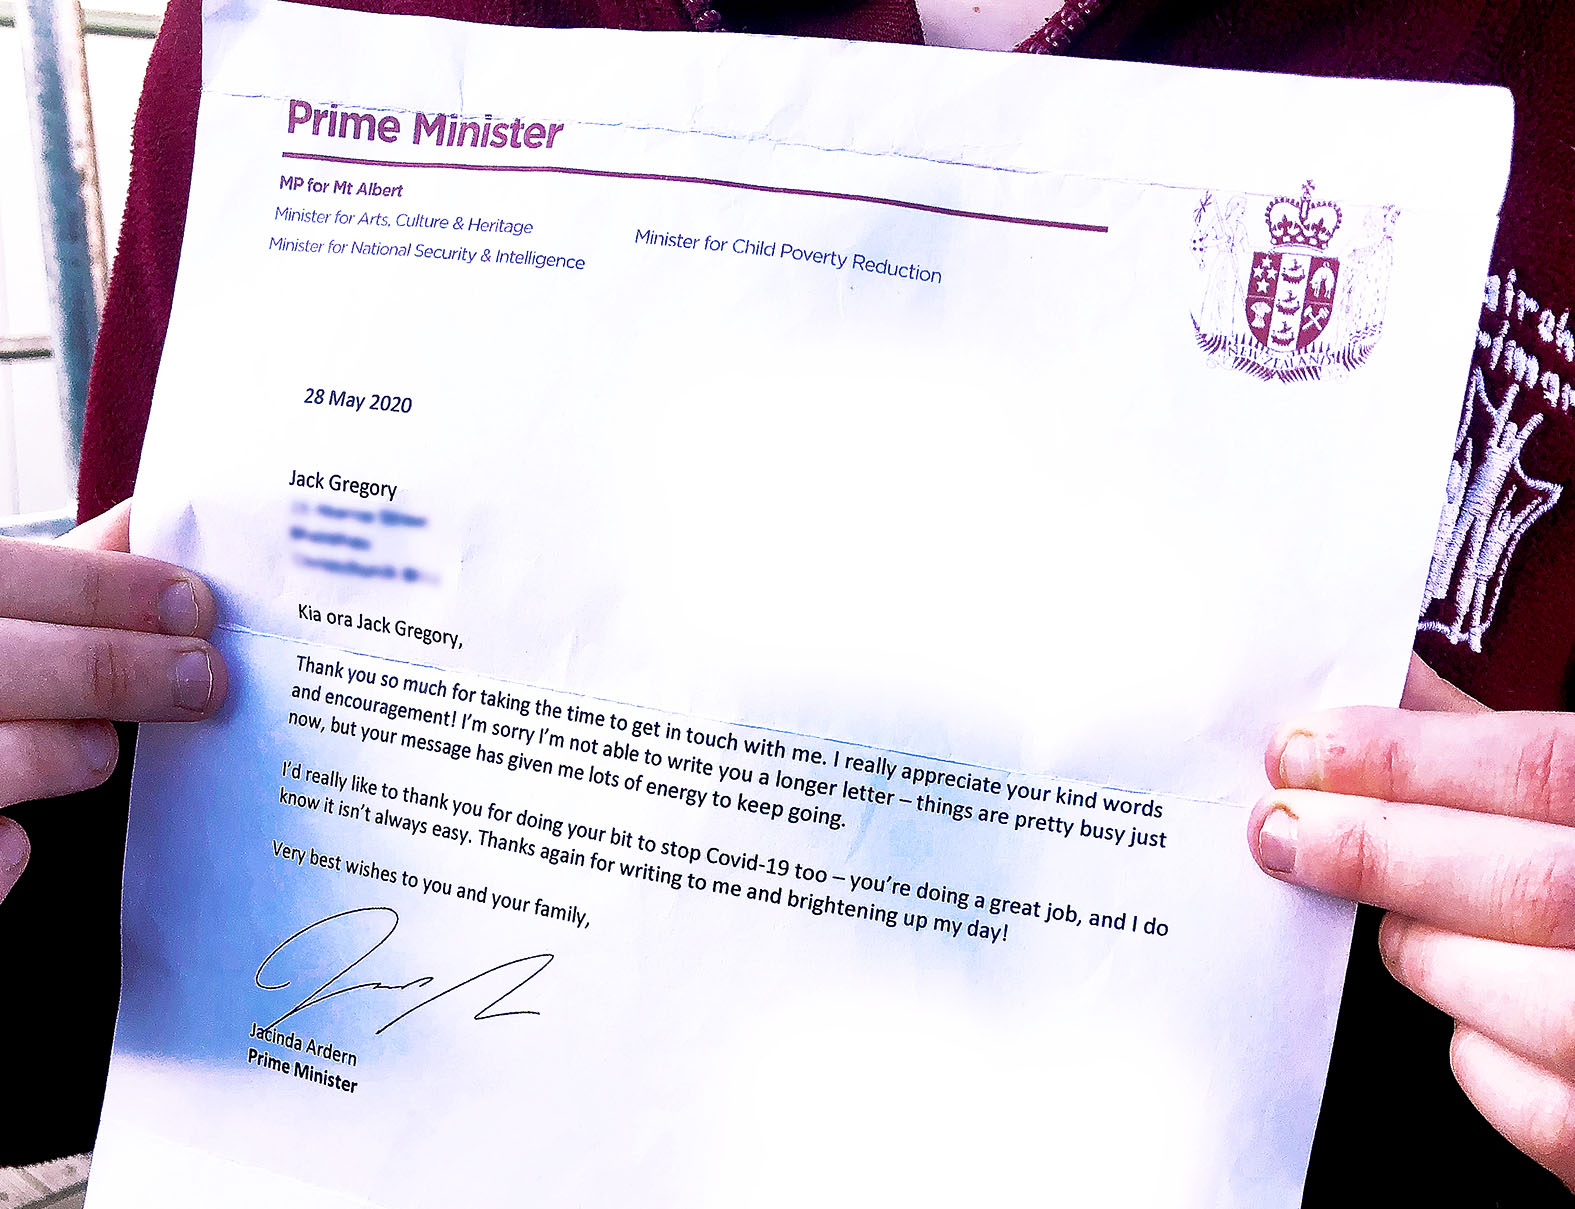 Jack with Ardern's letter. Photo: Bea Gooding